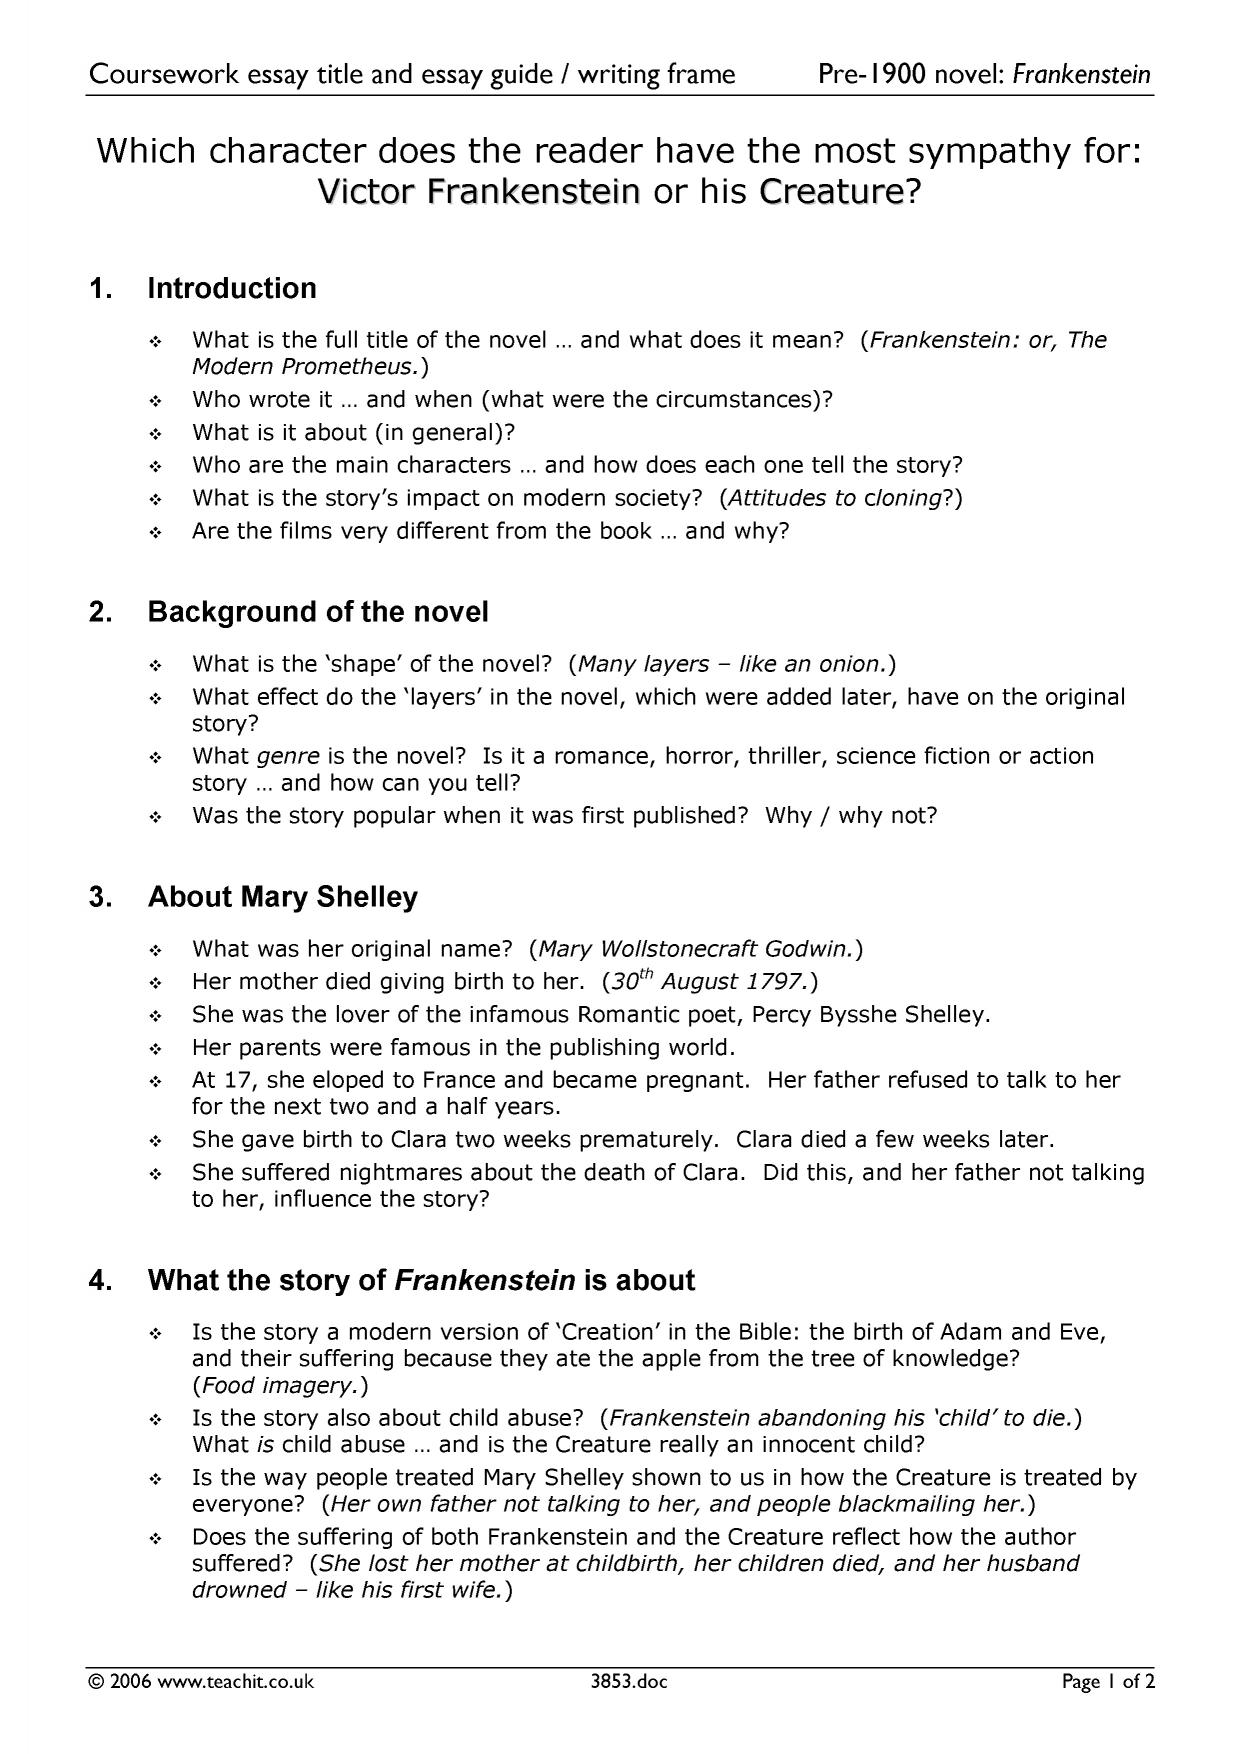 essay title and writing frame guide frankenstein by mary shelley essay title and writing frame guide frankenstein by mary shelley home page